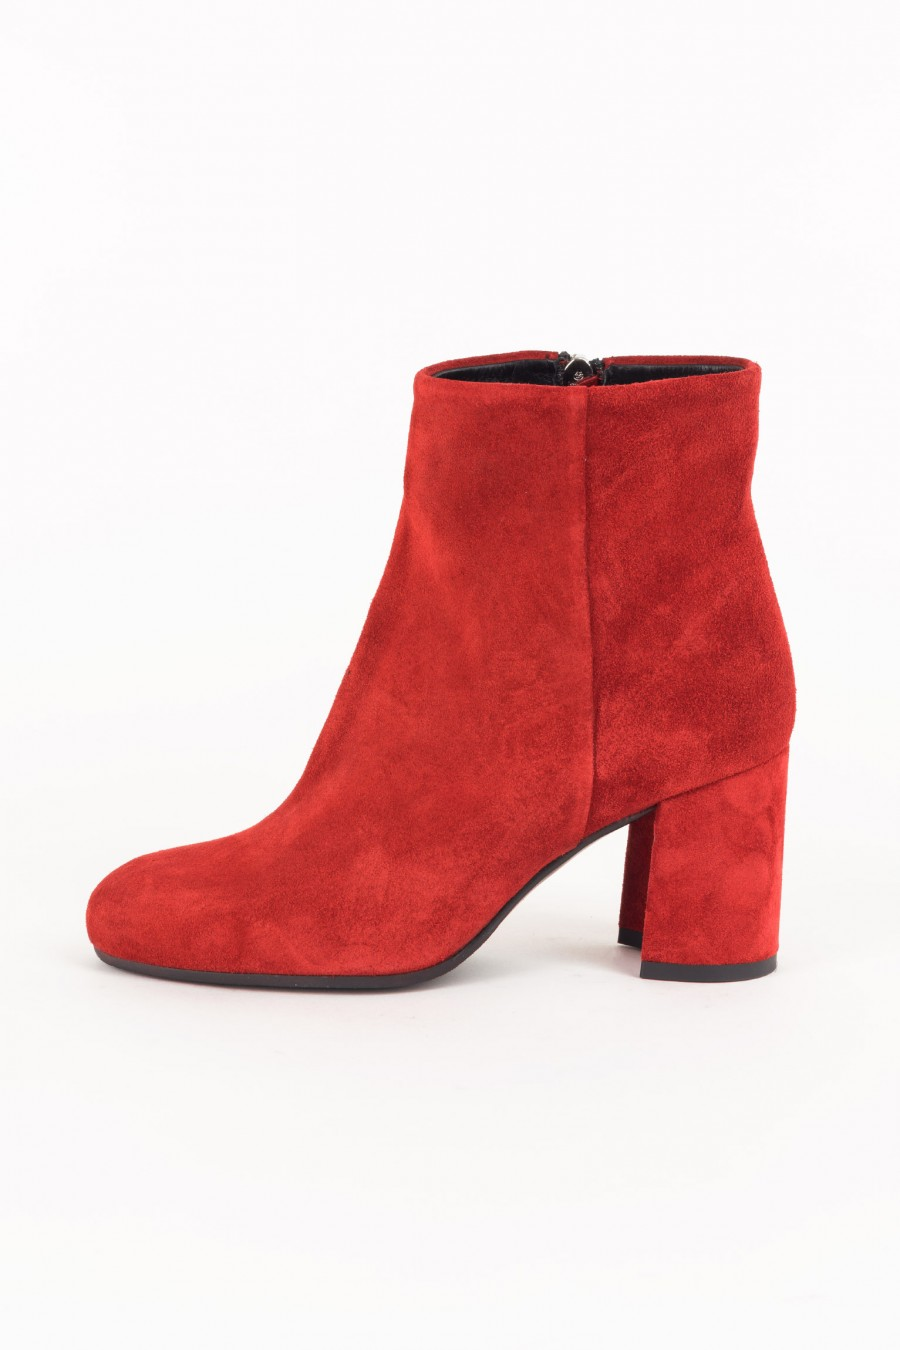 Red suede boots with zip